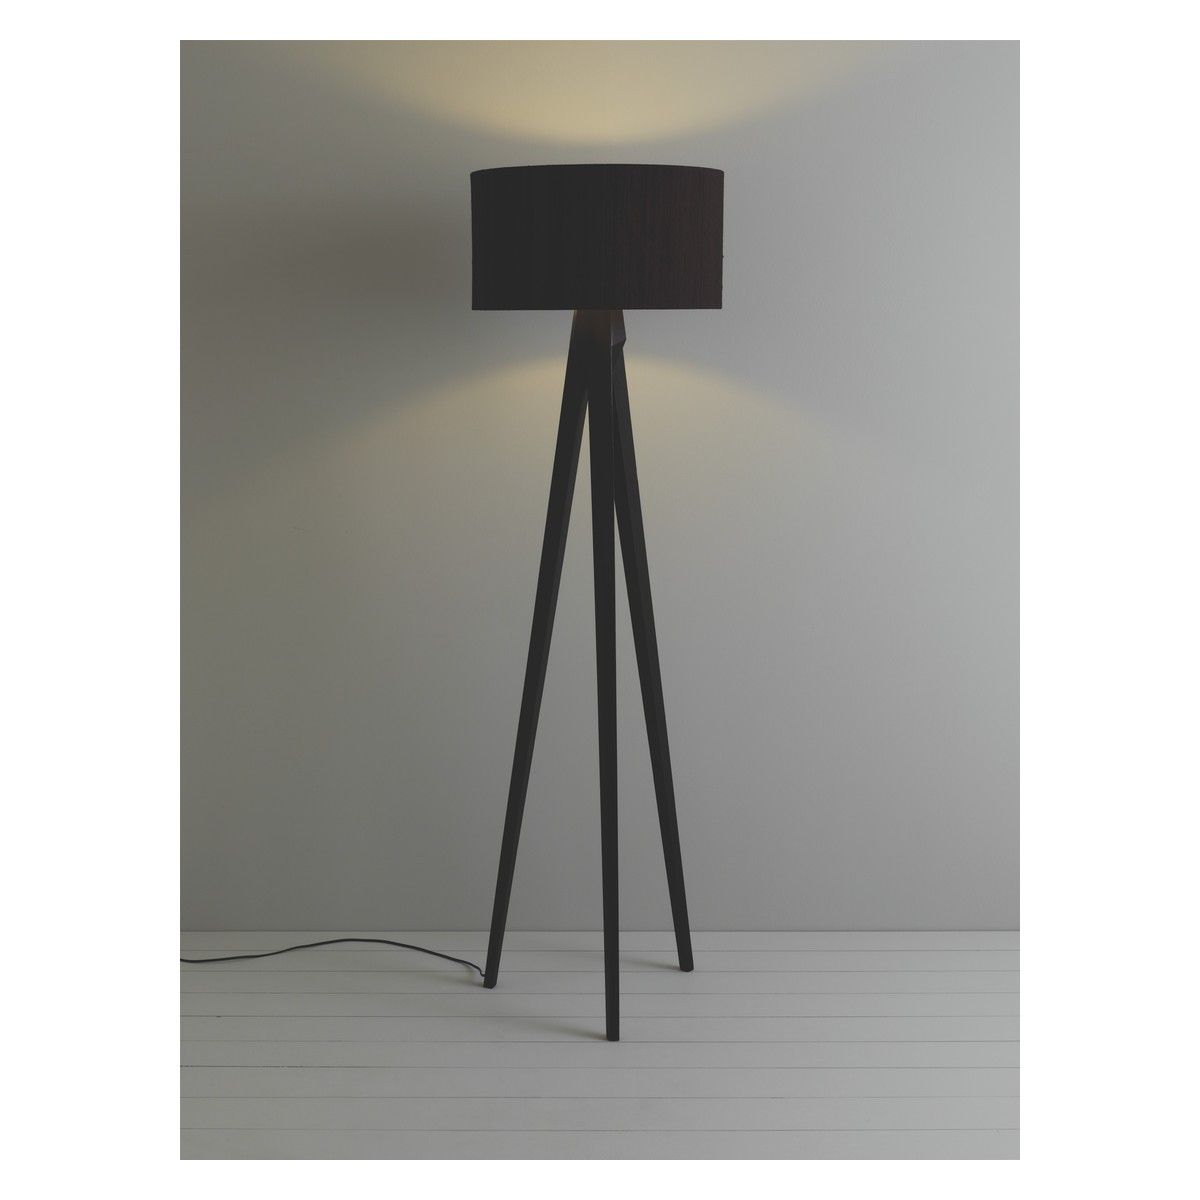 Tripod dark stained wooden tripod floor lamp with black shade tripod dark stained wooden tripod floor lamp with black shade buy now at habitat uk geotapseo Choice Image